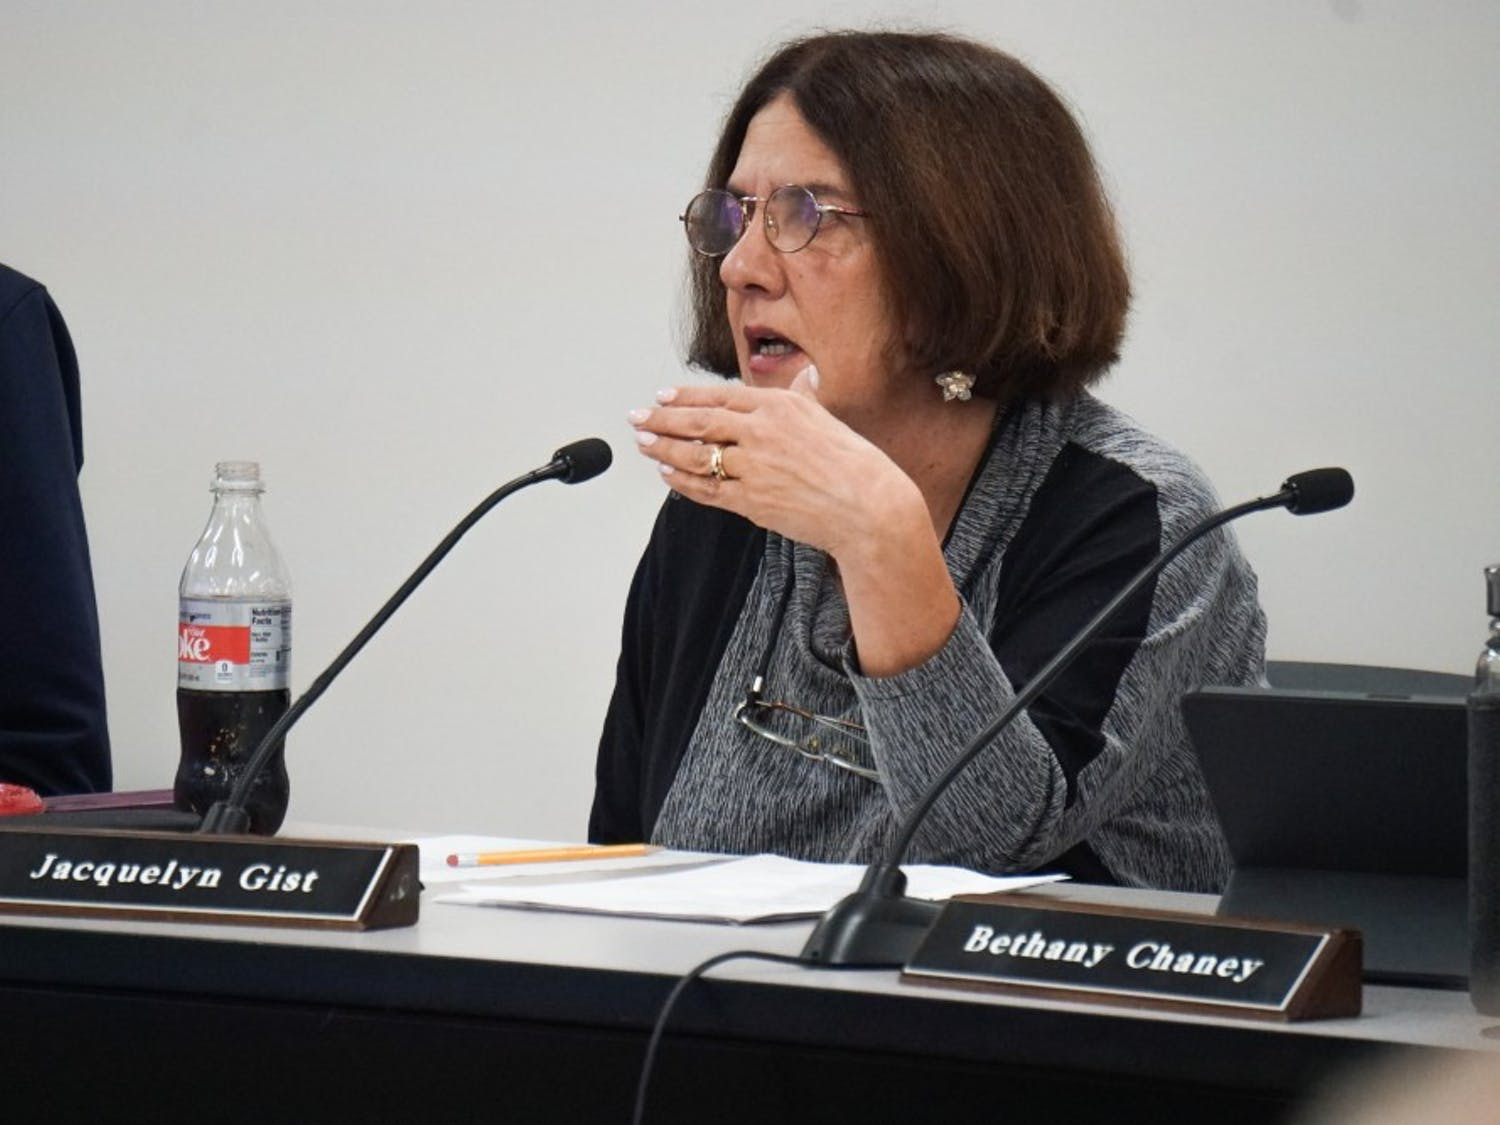 Carrboro Board of Aldermen member Jacquelyn Gist discussed numerous conditions for the proposed  development on Old Fayetteville Drive at the Carrboro Board of Aldermen meeting on Tuesday, Oct. 22, 2019.